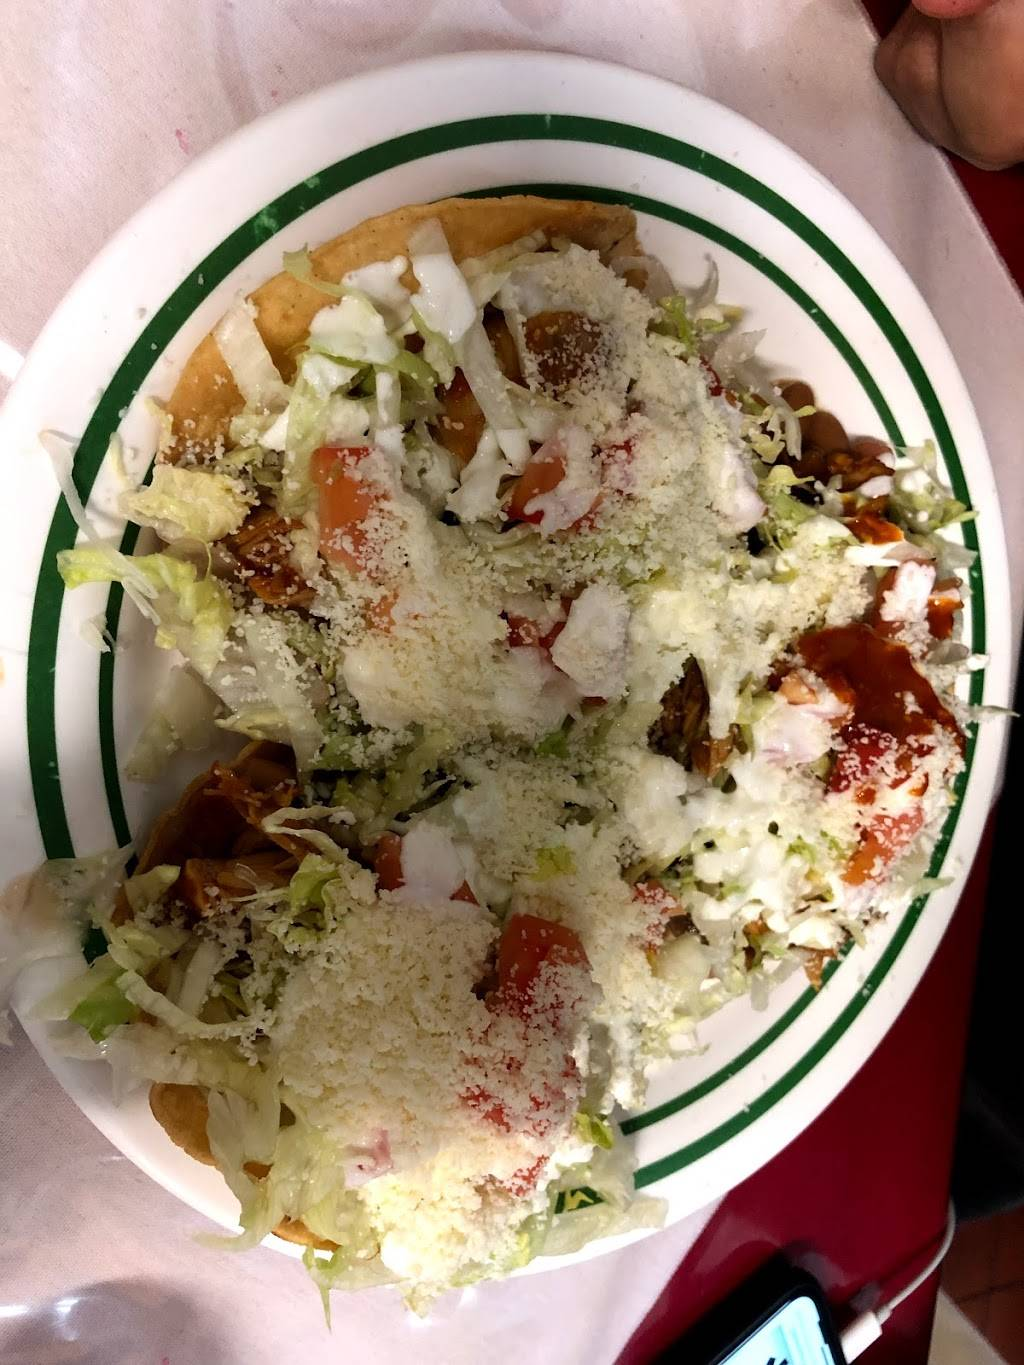 La Perla Mexicana | restaurant | 281 E 149th St, Bronx, NY 10451, USA | 7185856425 OR +1 718-585-6425